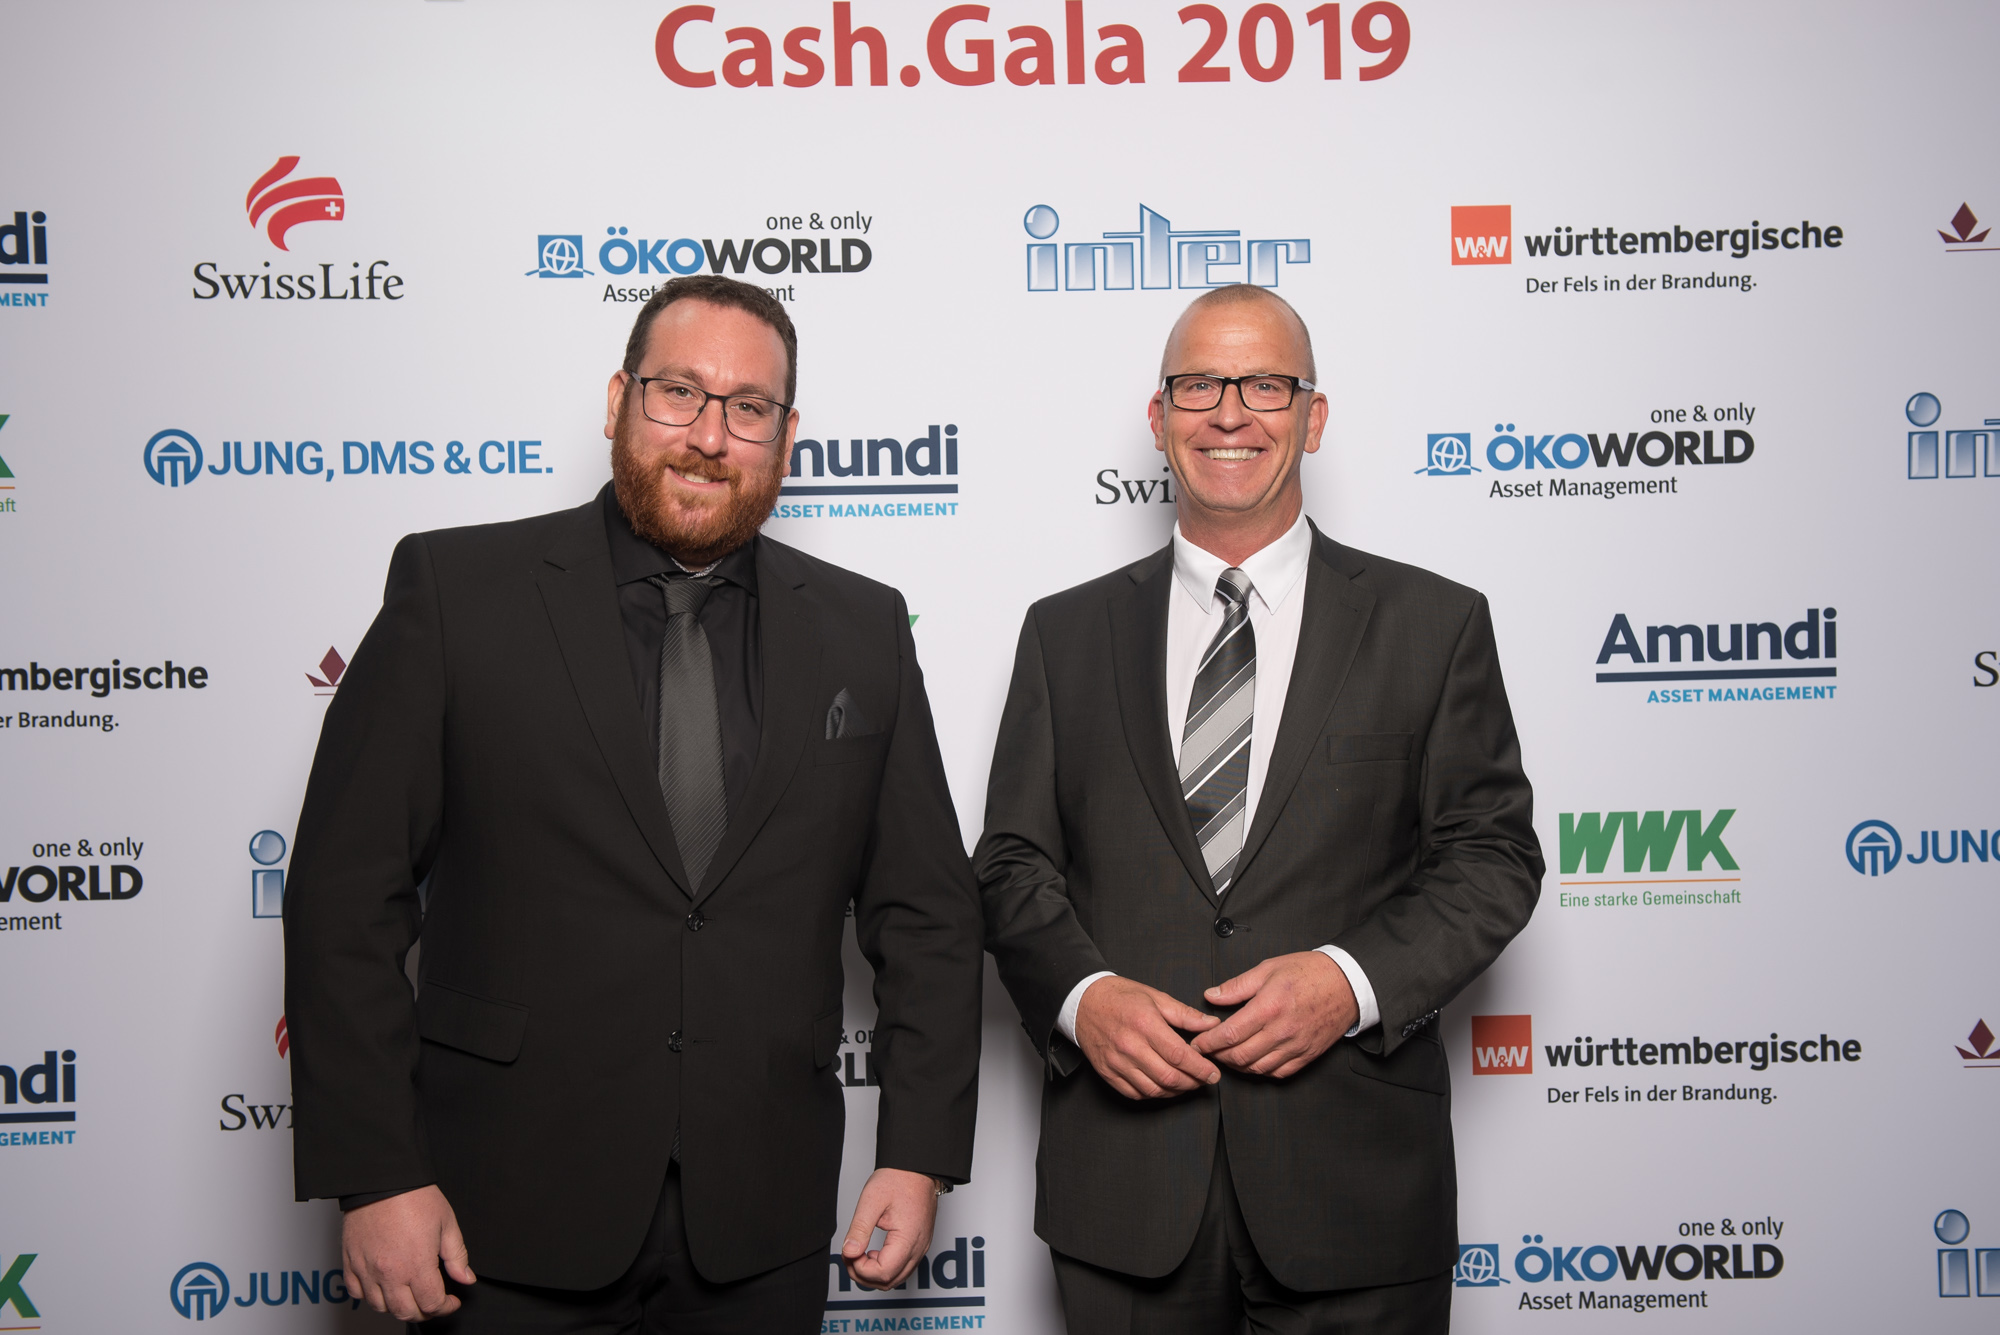 CashGala 2019 0049 AM DSC7084 in Cash.Gala 2019